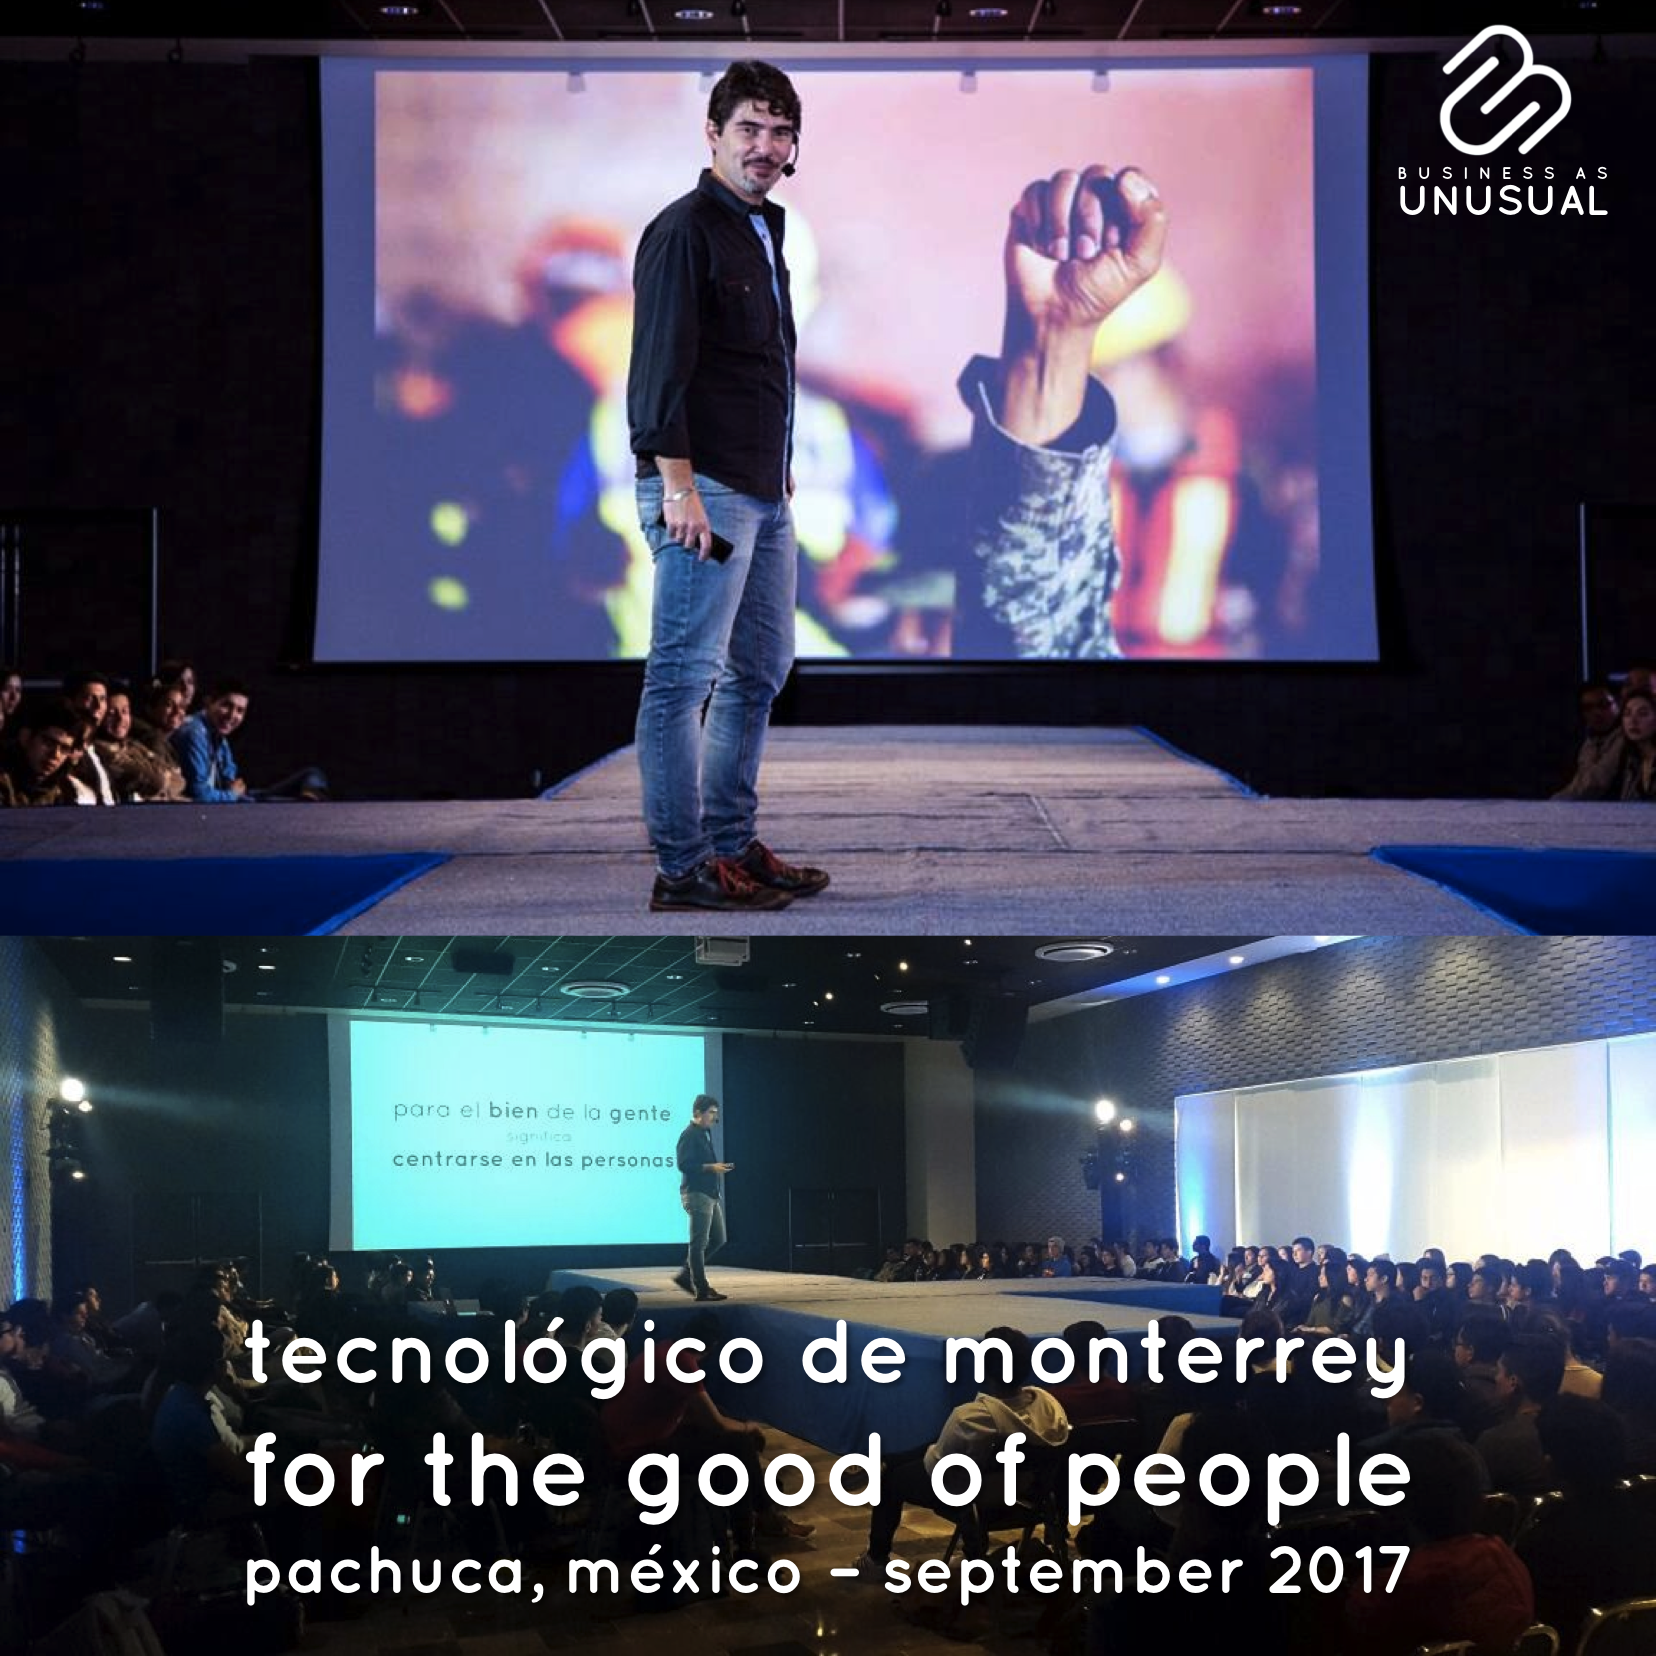 Instituto Tecnológico de Monterrey - For the good of people